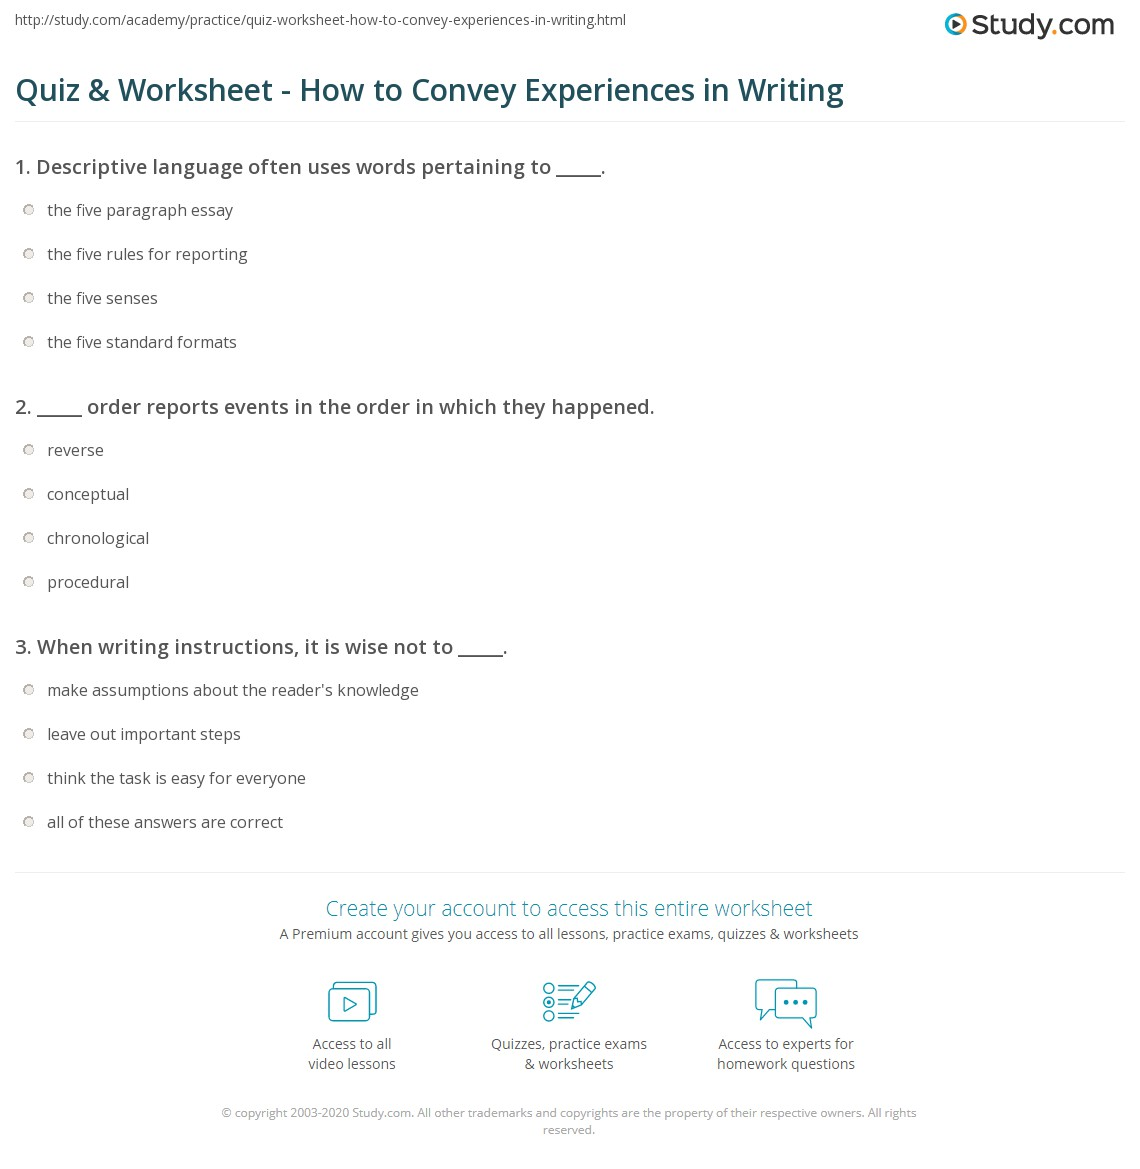 quiz worksheet how to convey experiences in writing. Black Bedroom Furniture Sets. Home Design Ideas